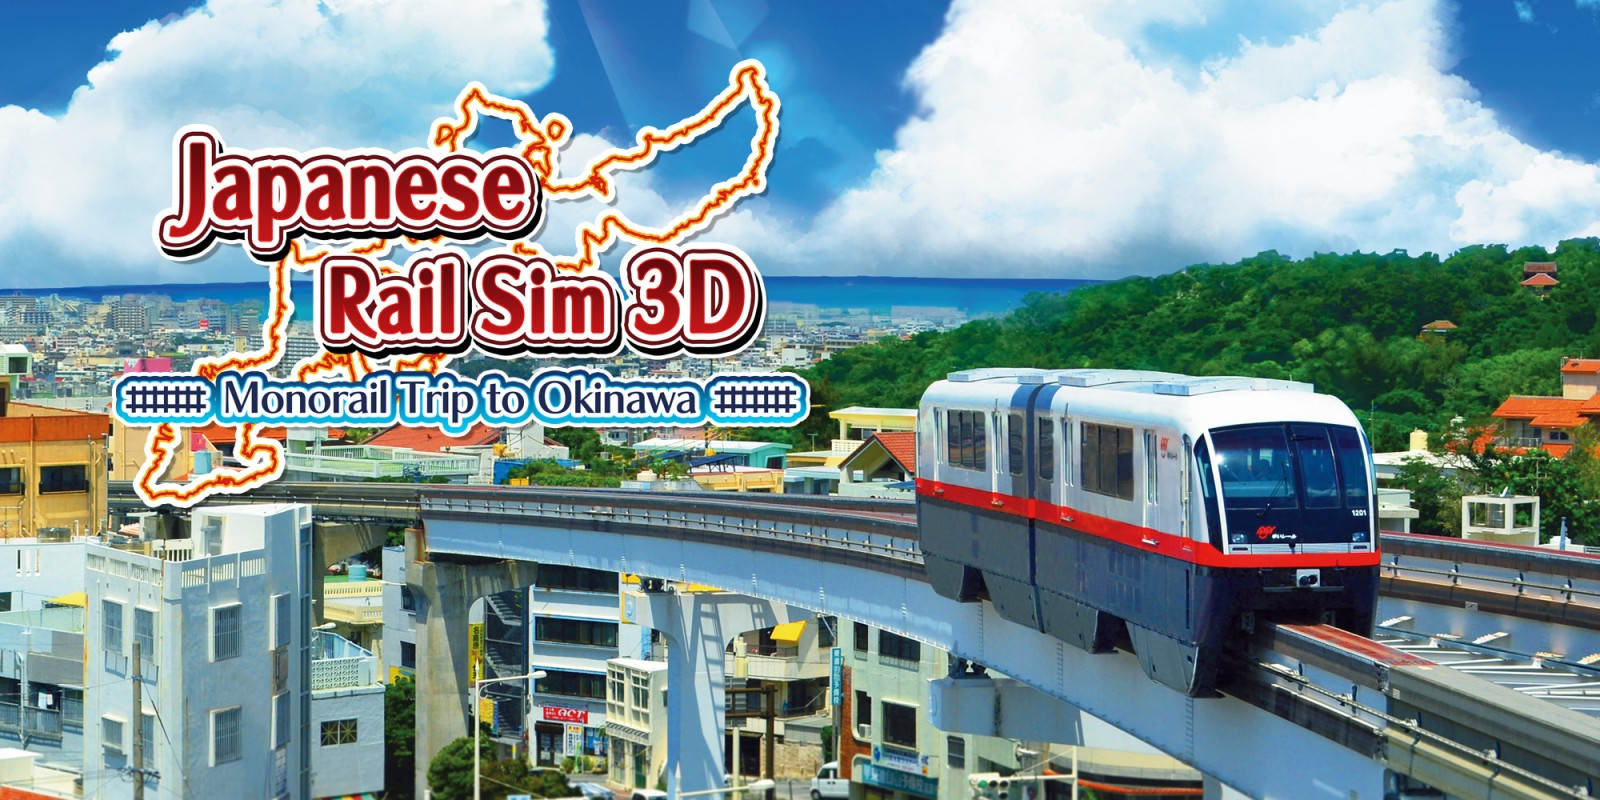 Japanese Rail Sim 3D Monorail Trip to Okinawa | Nintendo 3DS